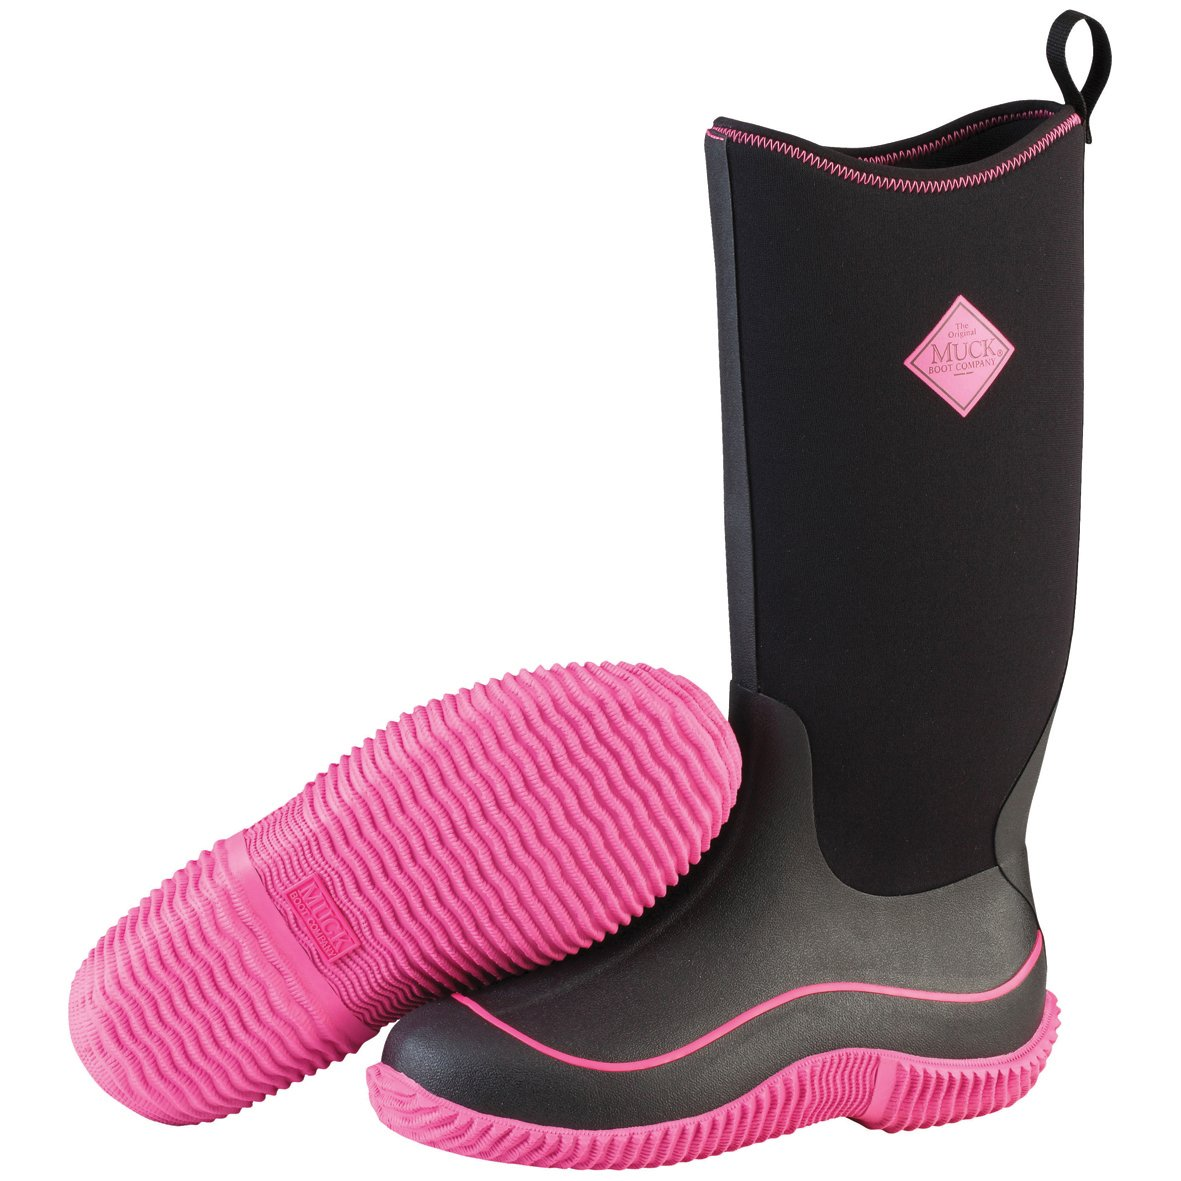 Muck Boot Women's Hale Snow Boot, Black/Hot Pink, 7 M US